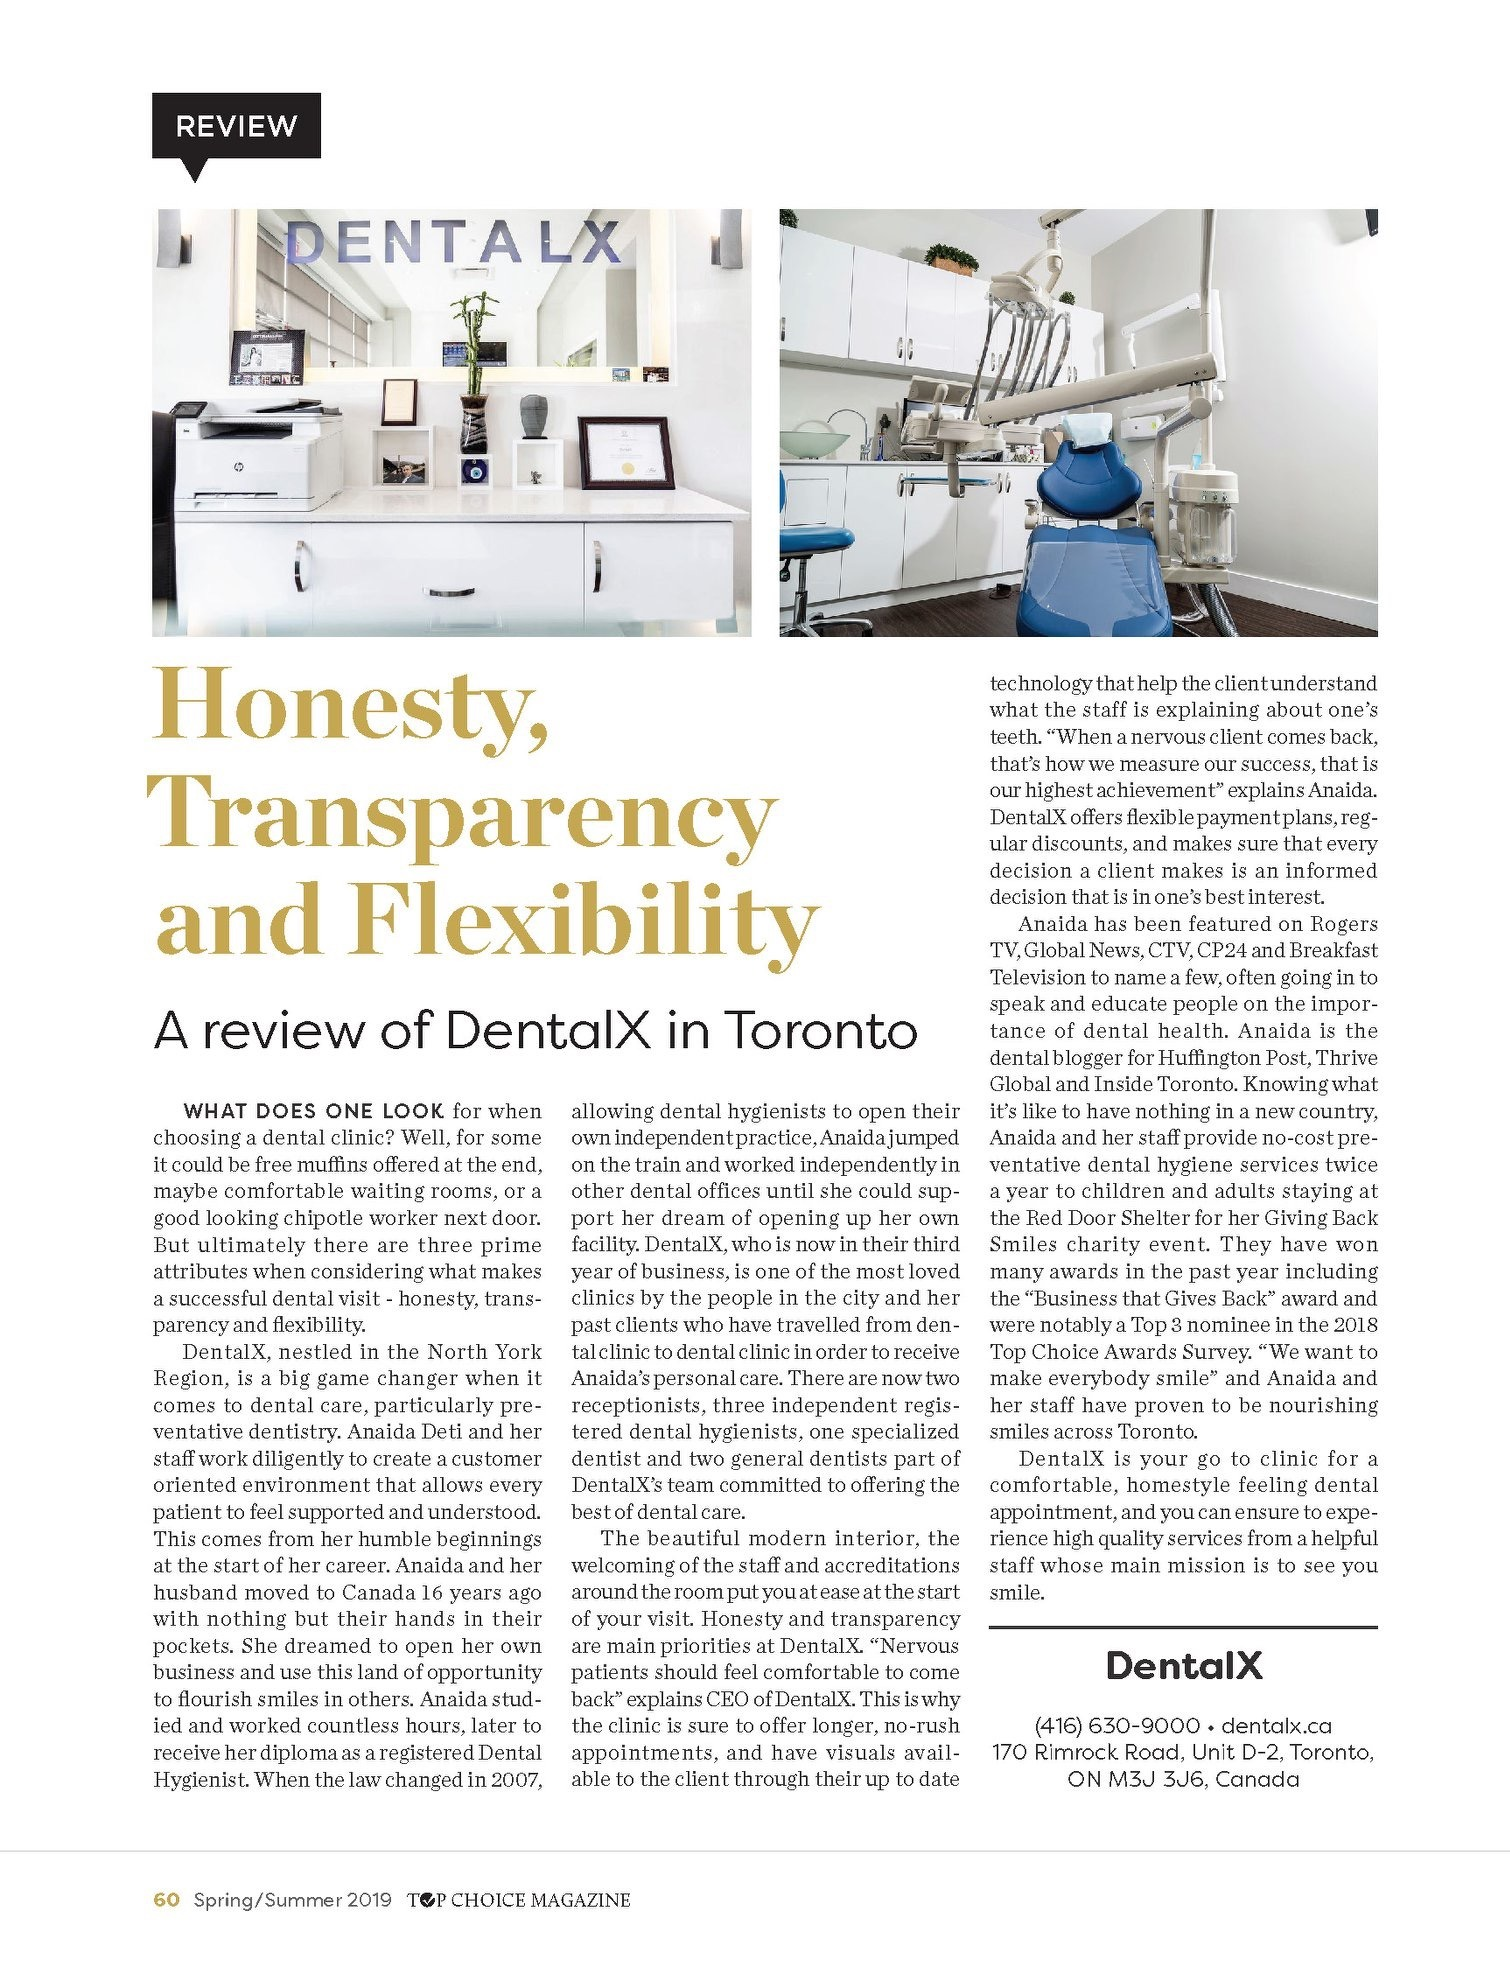 review of dentalx in top choice magazine